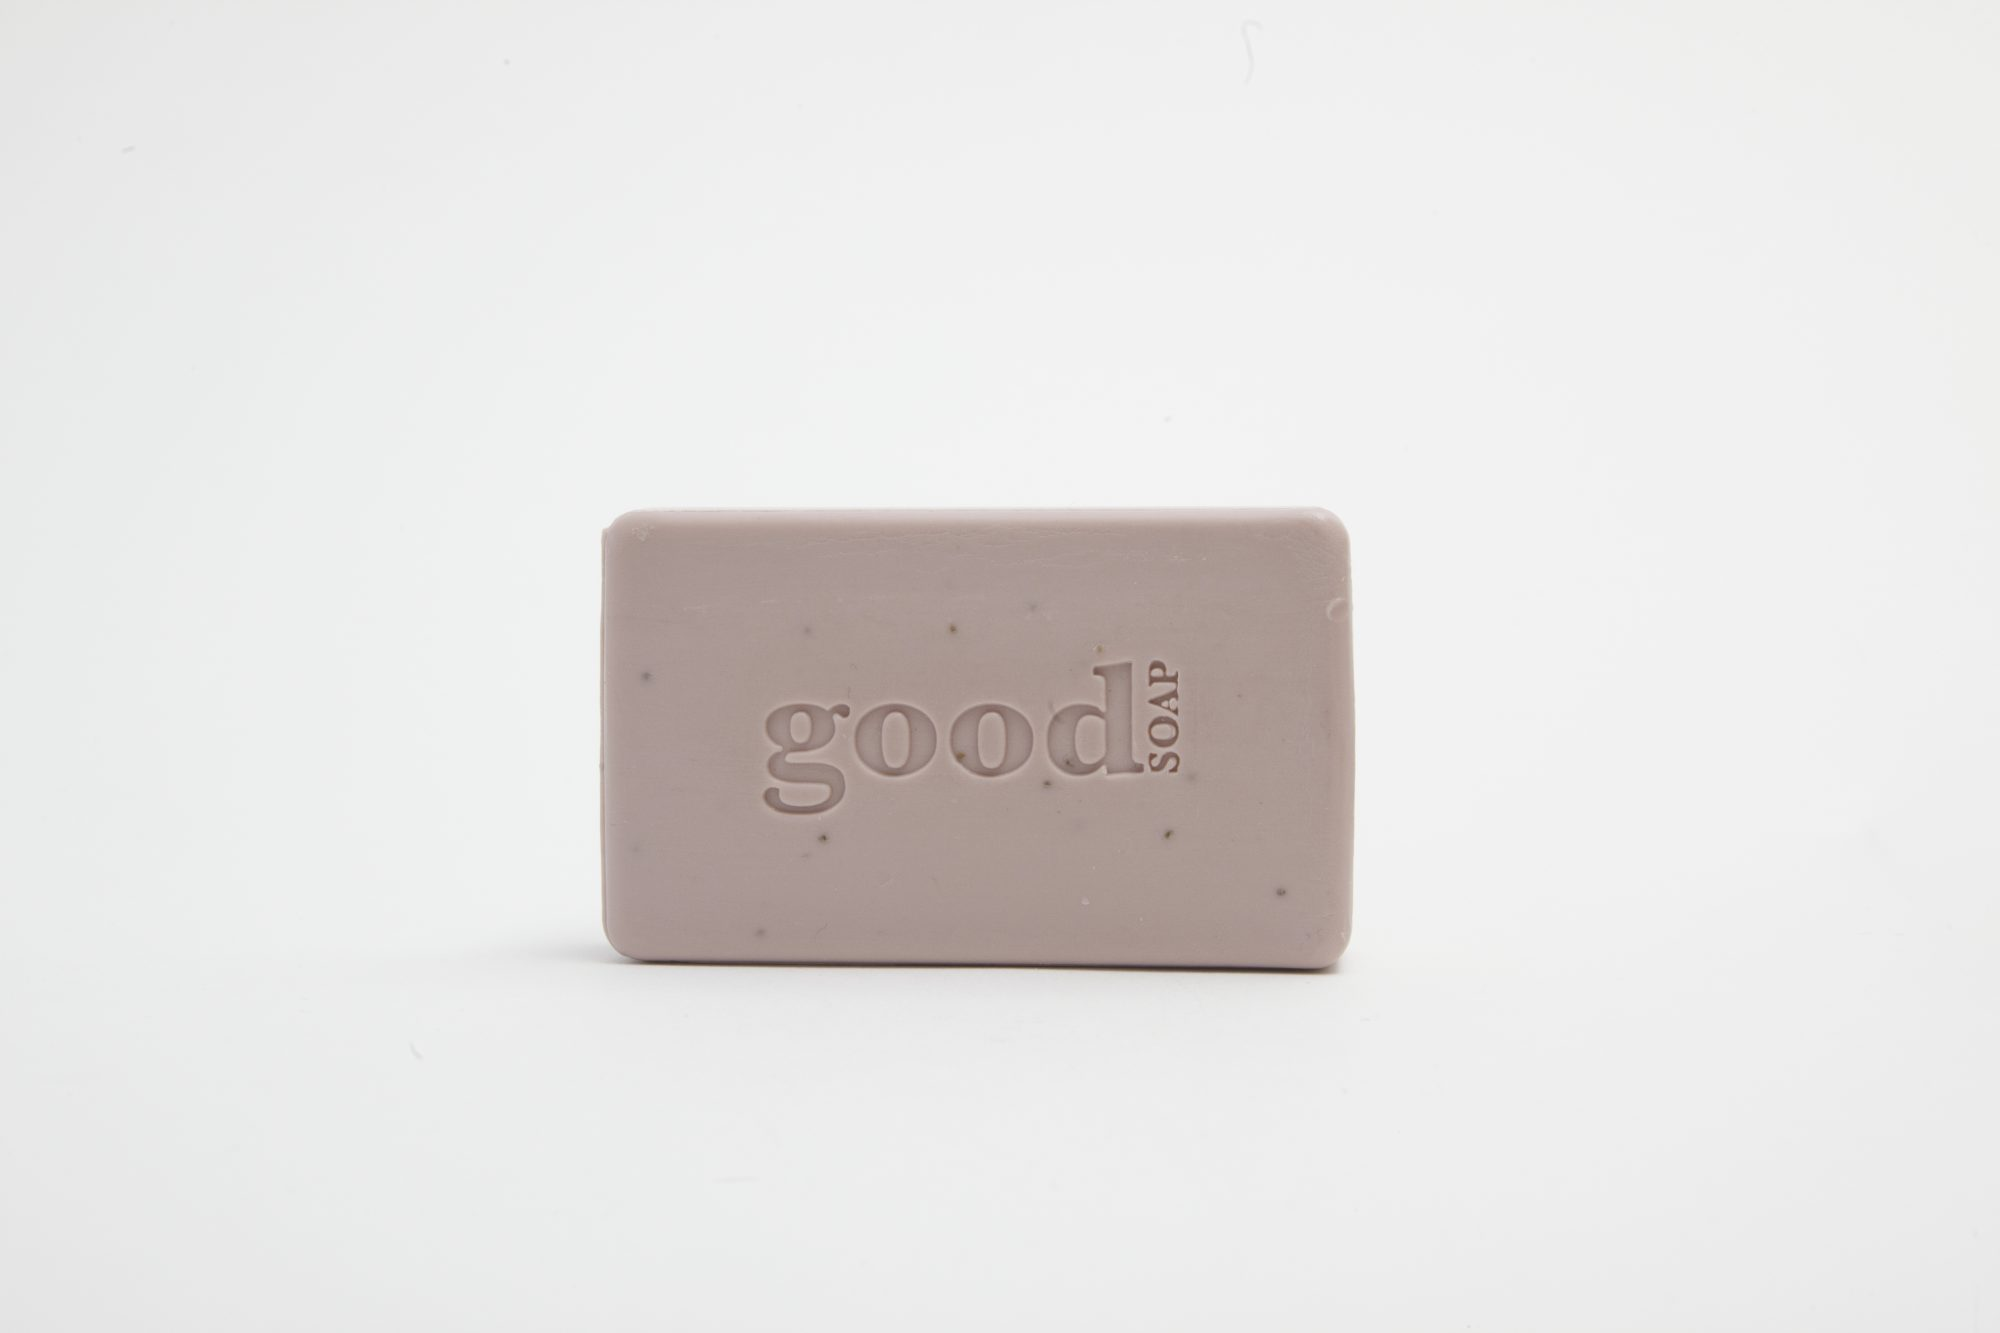 GoodSoapSingle[1]